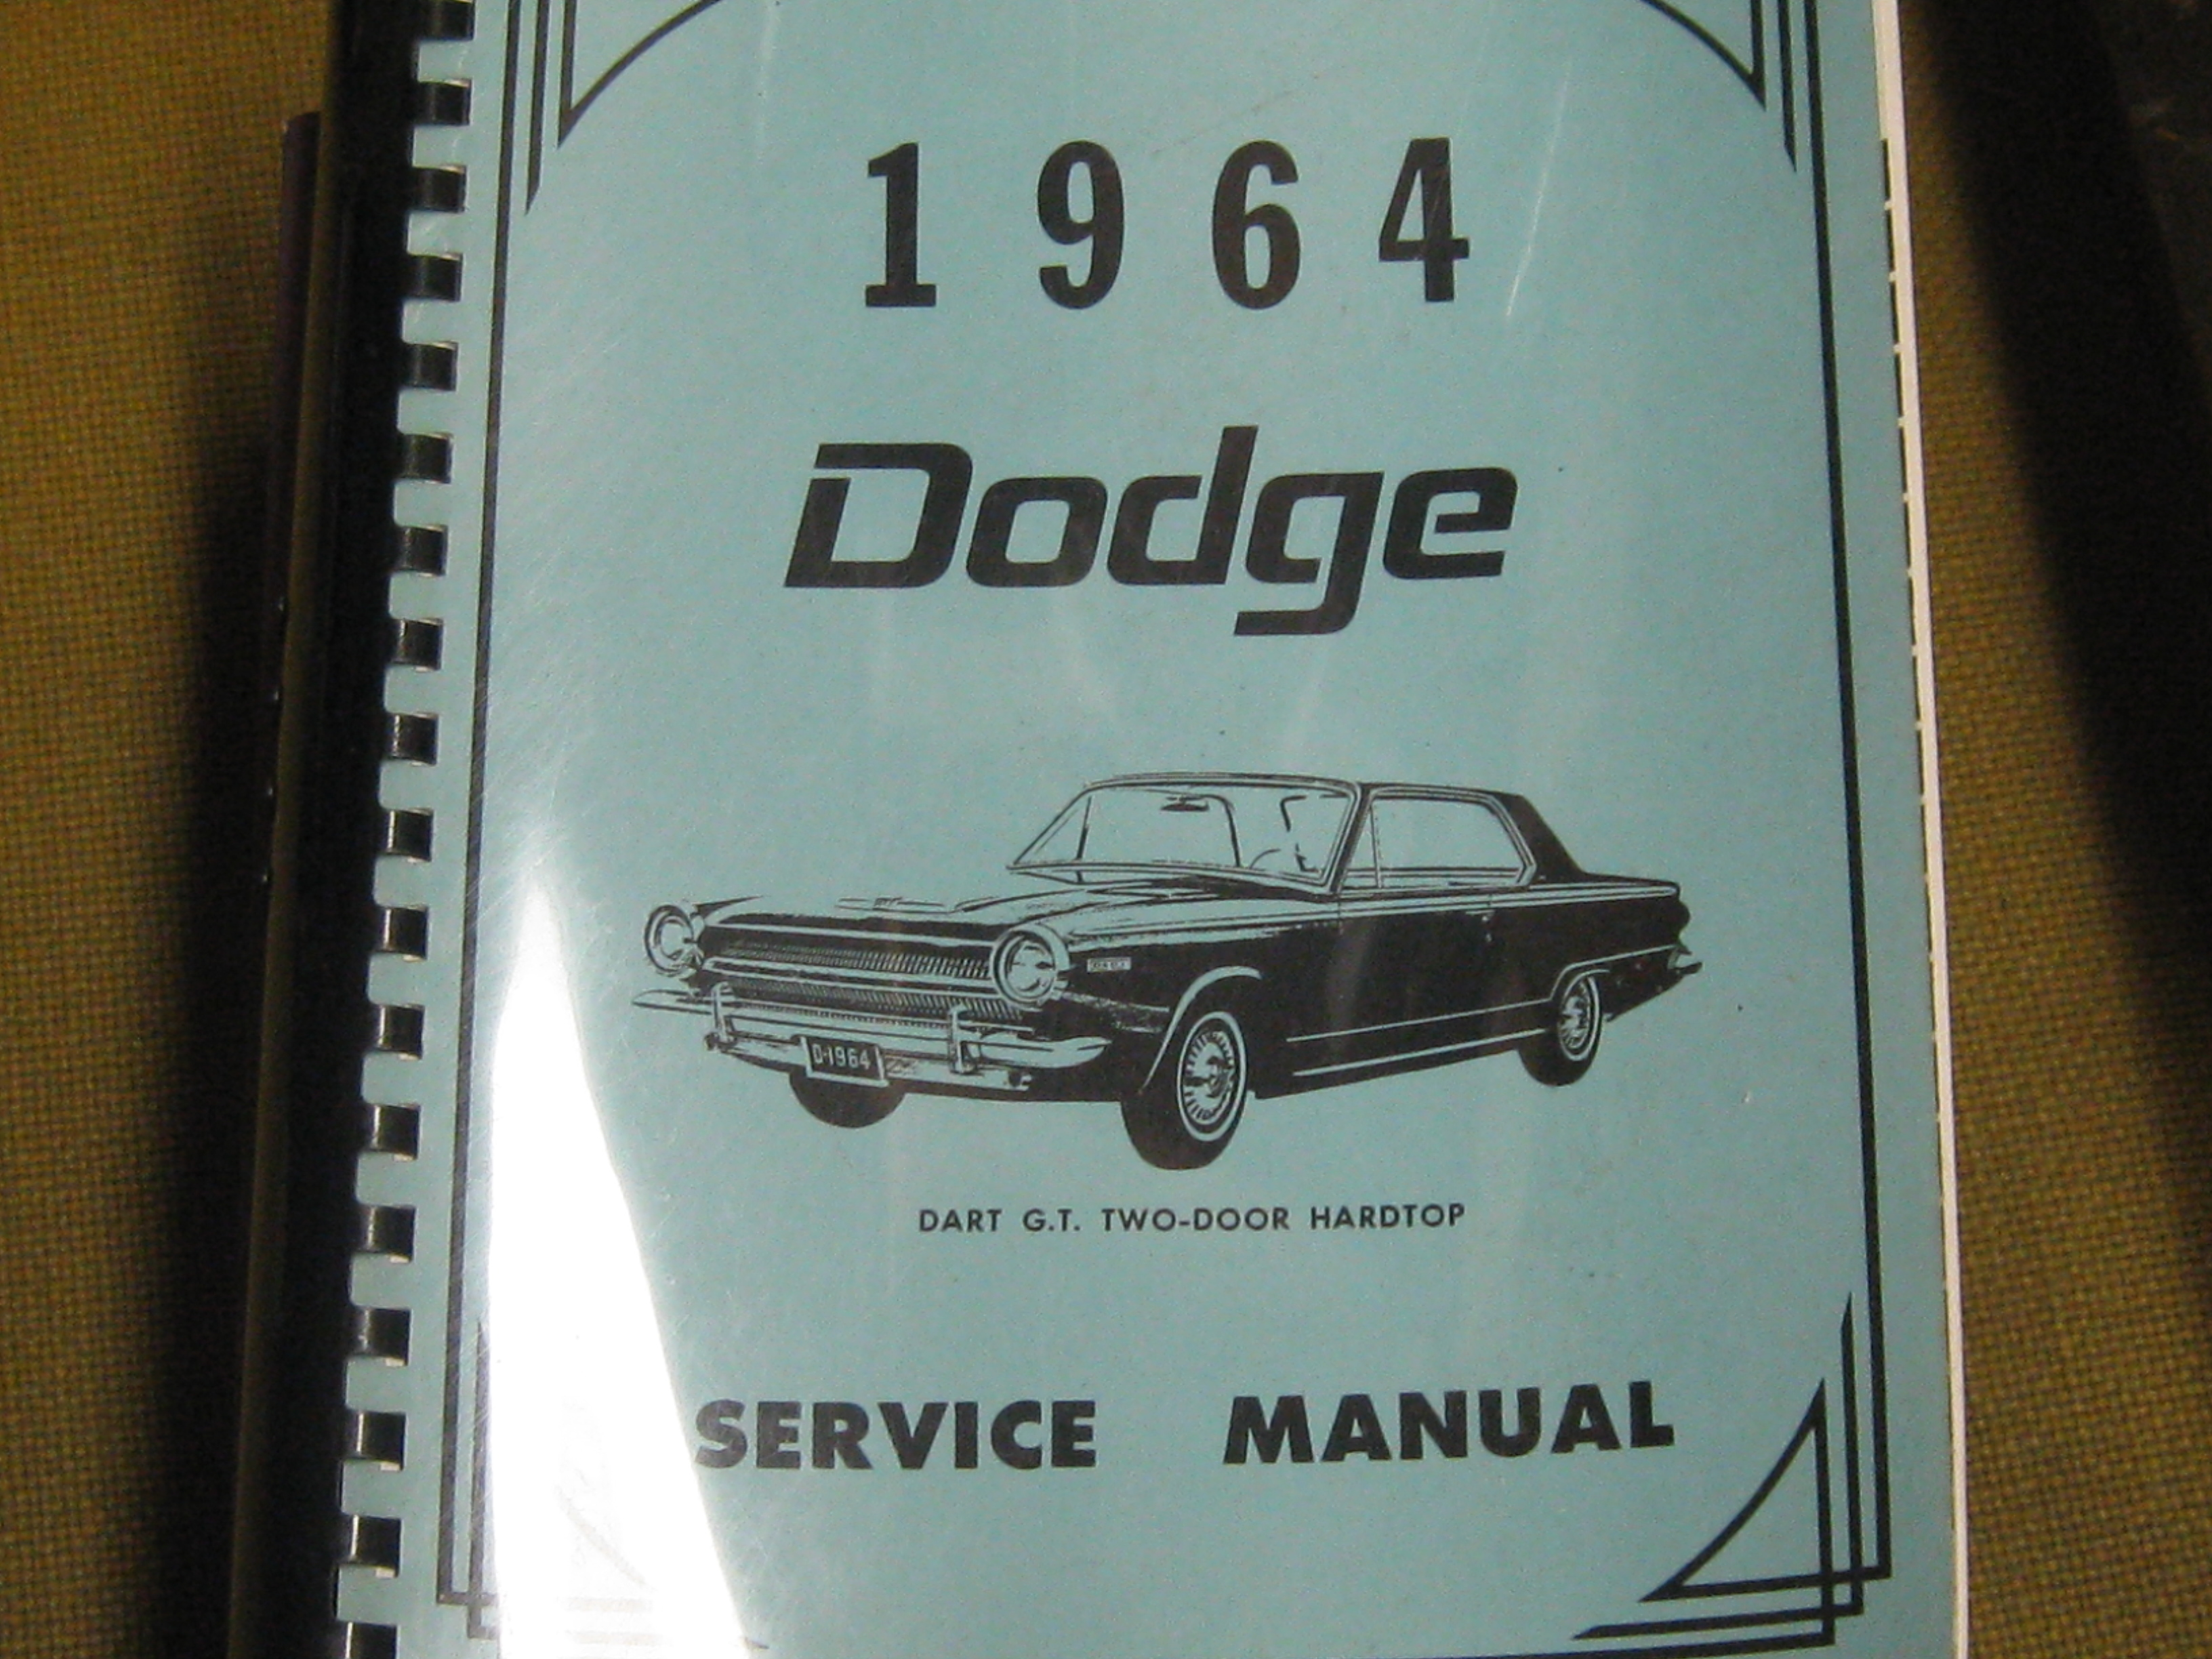 $45.00 Tax may apply. 2 in stock. Quantity. Add to cart. SKU: 1964 Dodge  Dart Service Manual